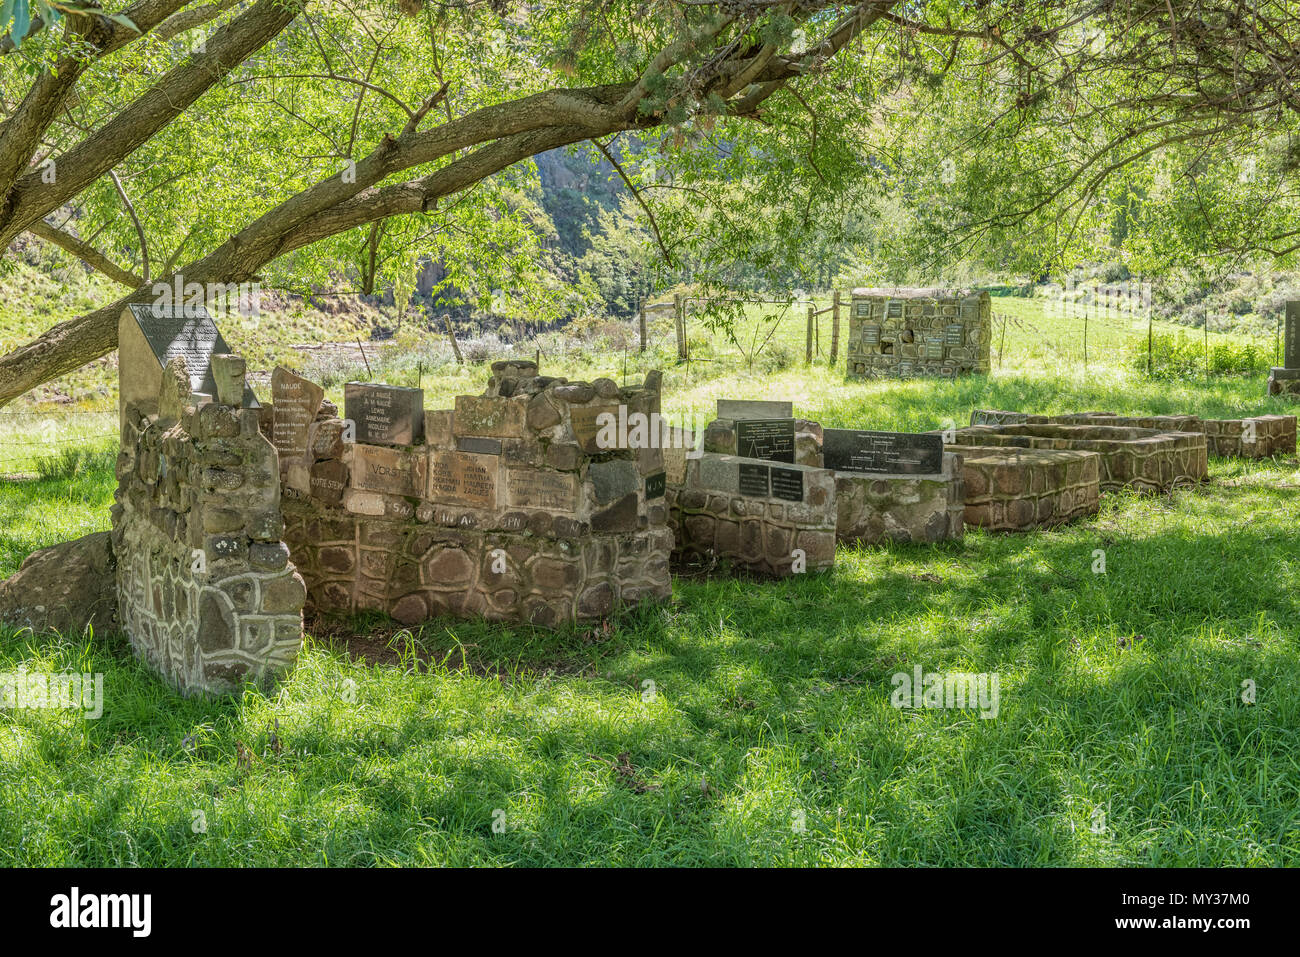 NAUDES NEK PASS, SOUTH AFRICA - MARCH 27, 2018: The Naude Family Monument at the foot of the Naudes Nek Pass near Rhodes in the Eastern Cape Province - Stock Image